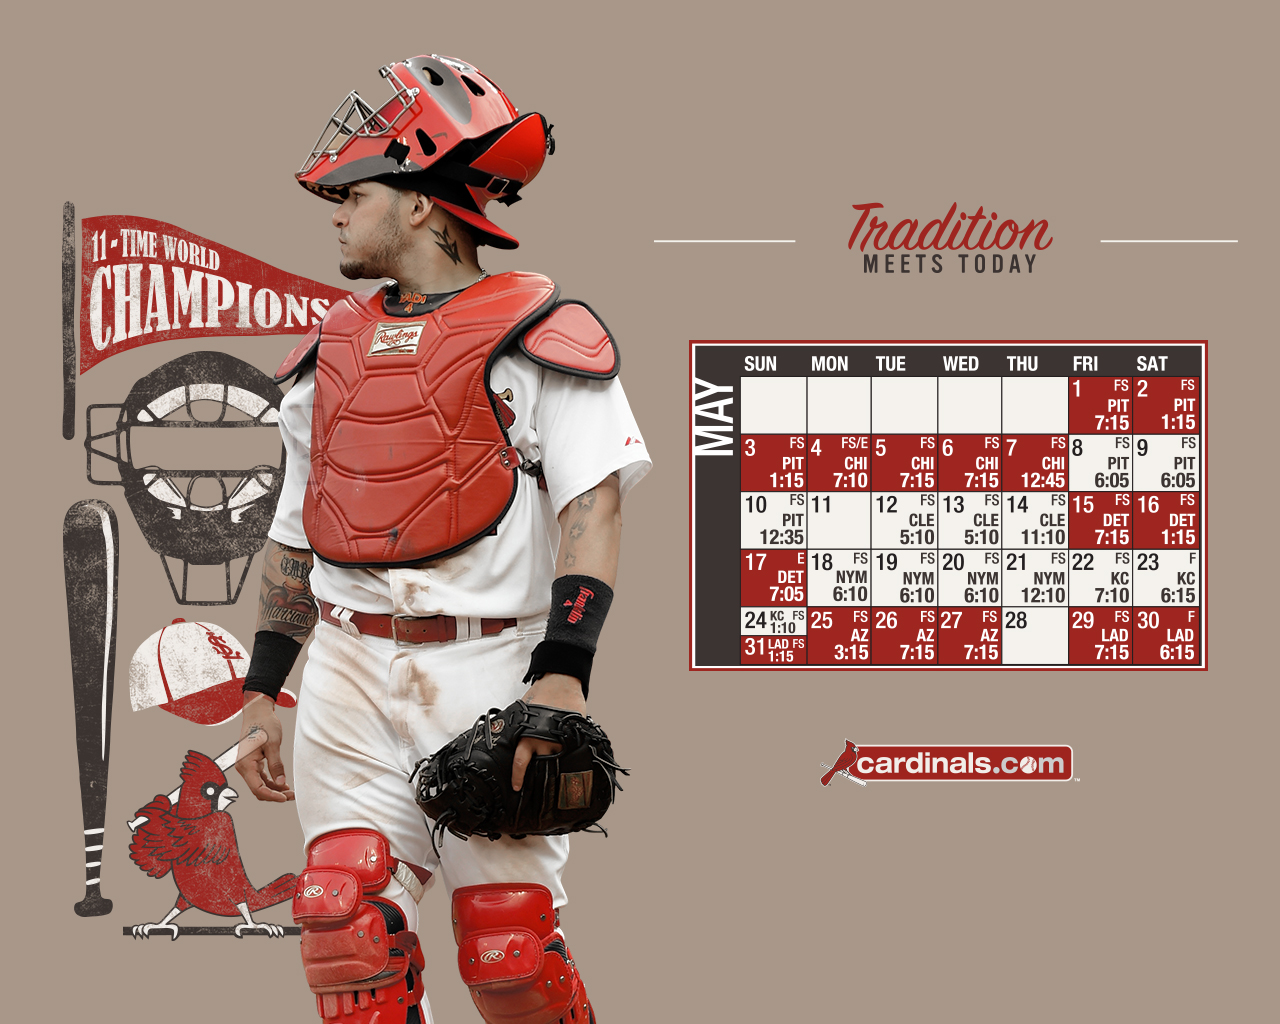 St louis cardinals wallpaper 23 wallpapers adorable - Arizona cardinals screensaver free ...